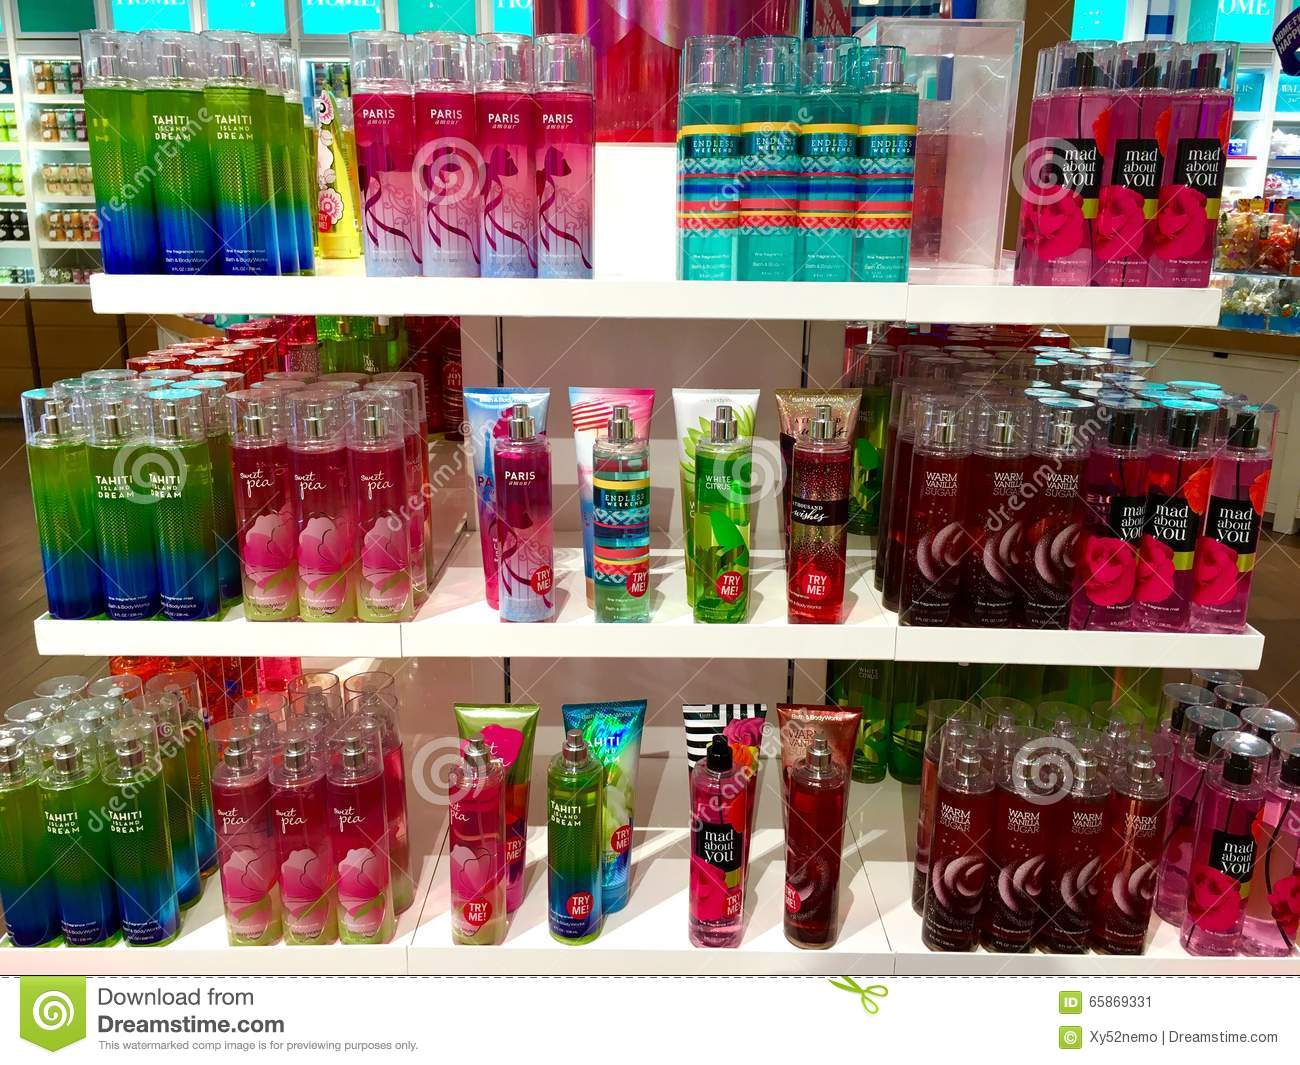 Editorial Stock Photo  Download Bath And Body Works. Bath And Body Works On Stack Editorial Photo   Image  65869331